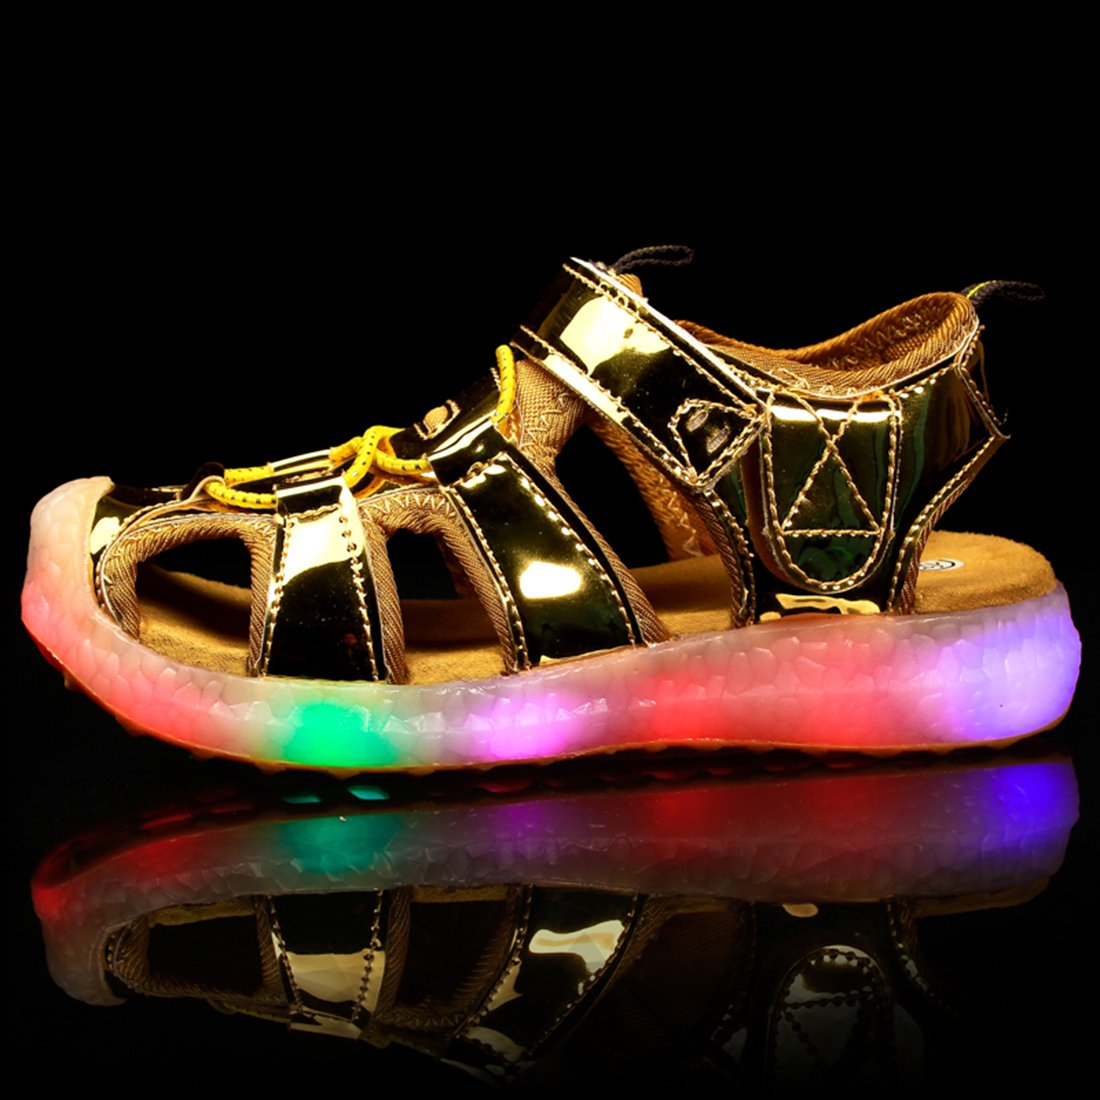 ON Kids Girls Boys USB Charging LED Flashing Summer Beach Shoes Sports Sandals ONUS-PYNSH136